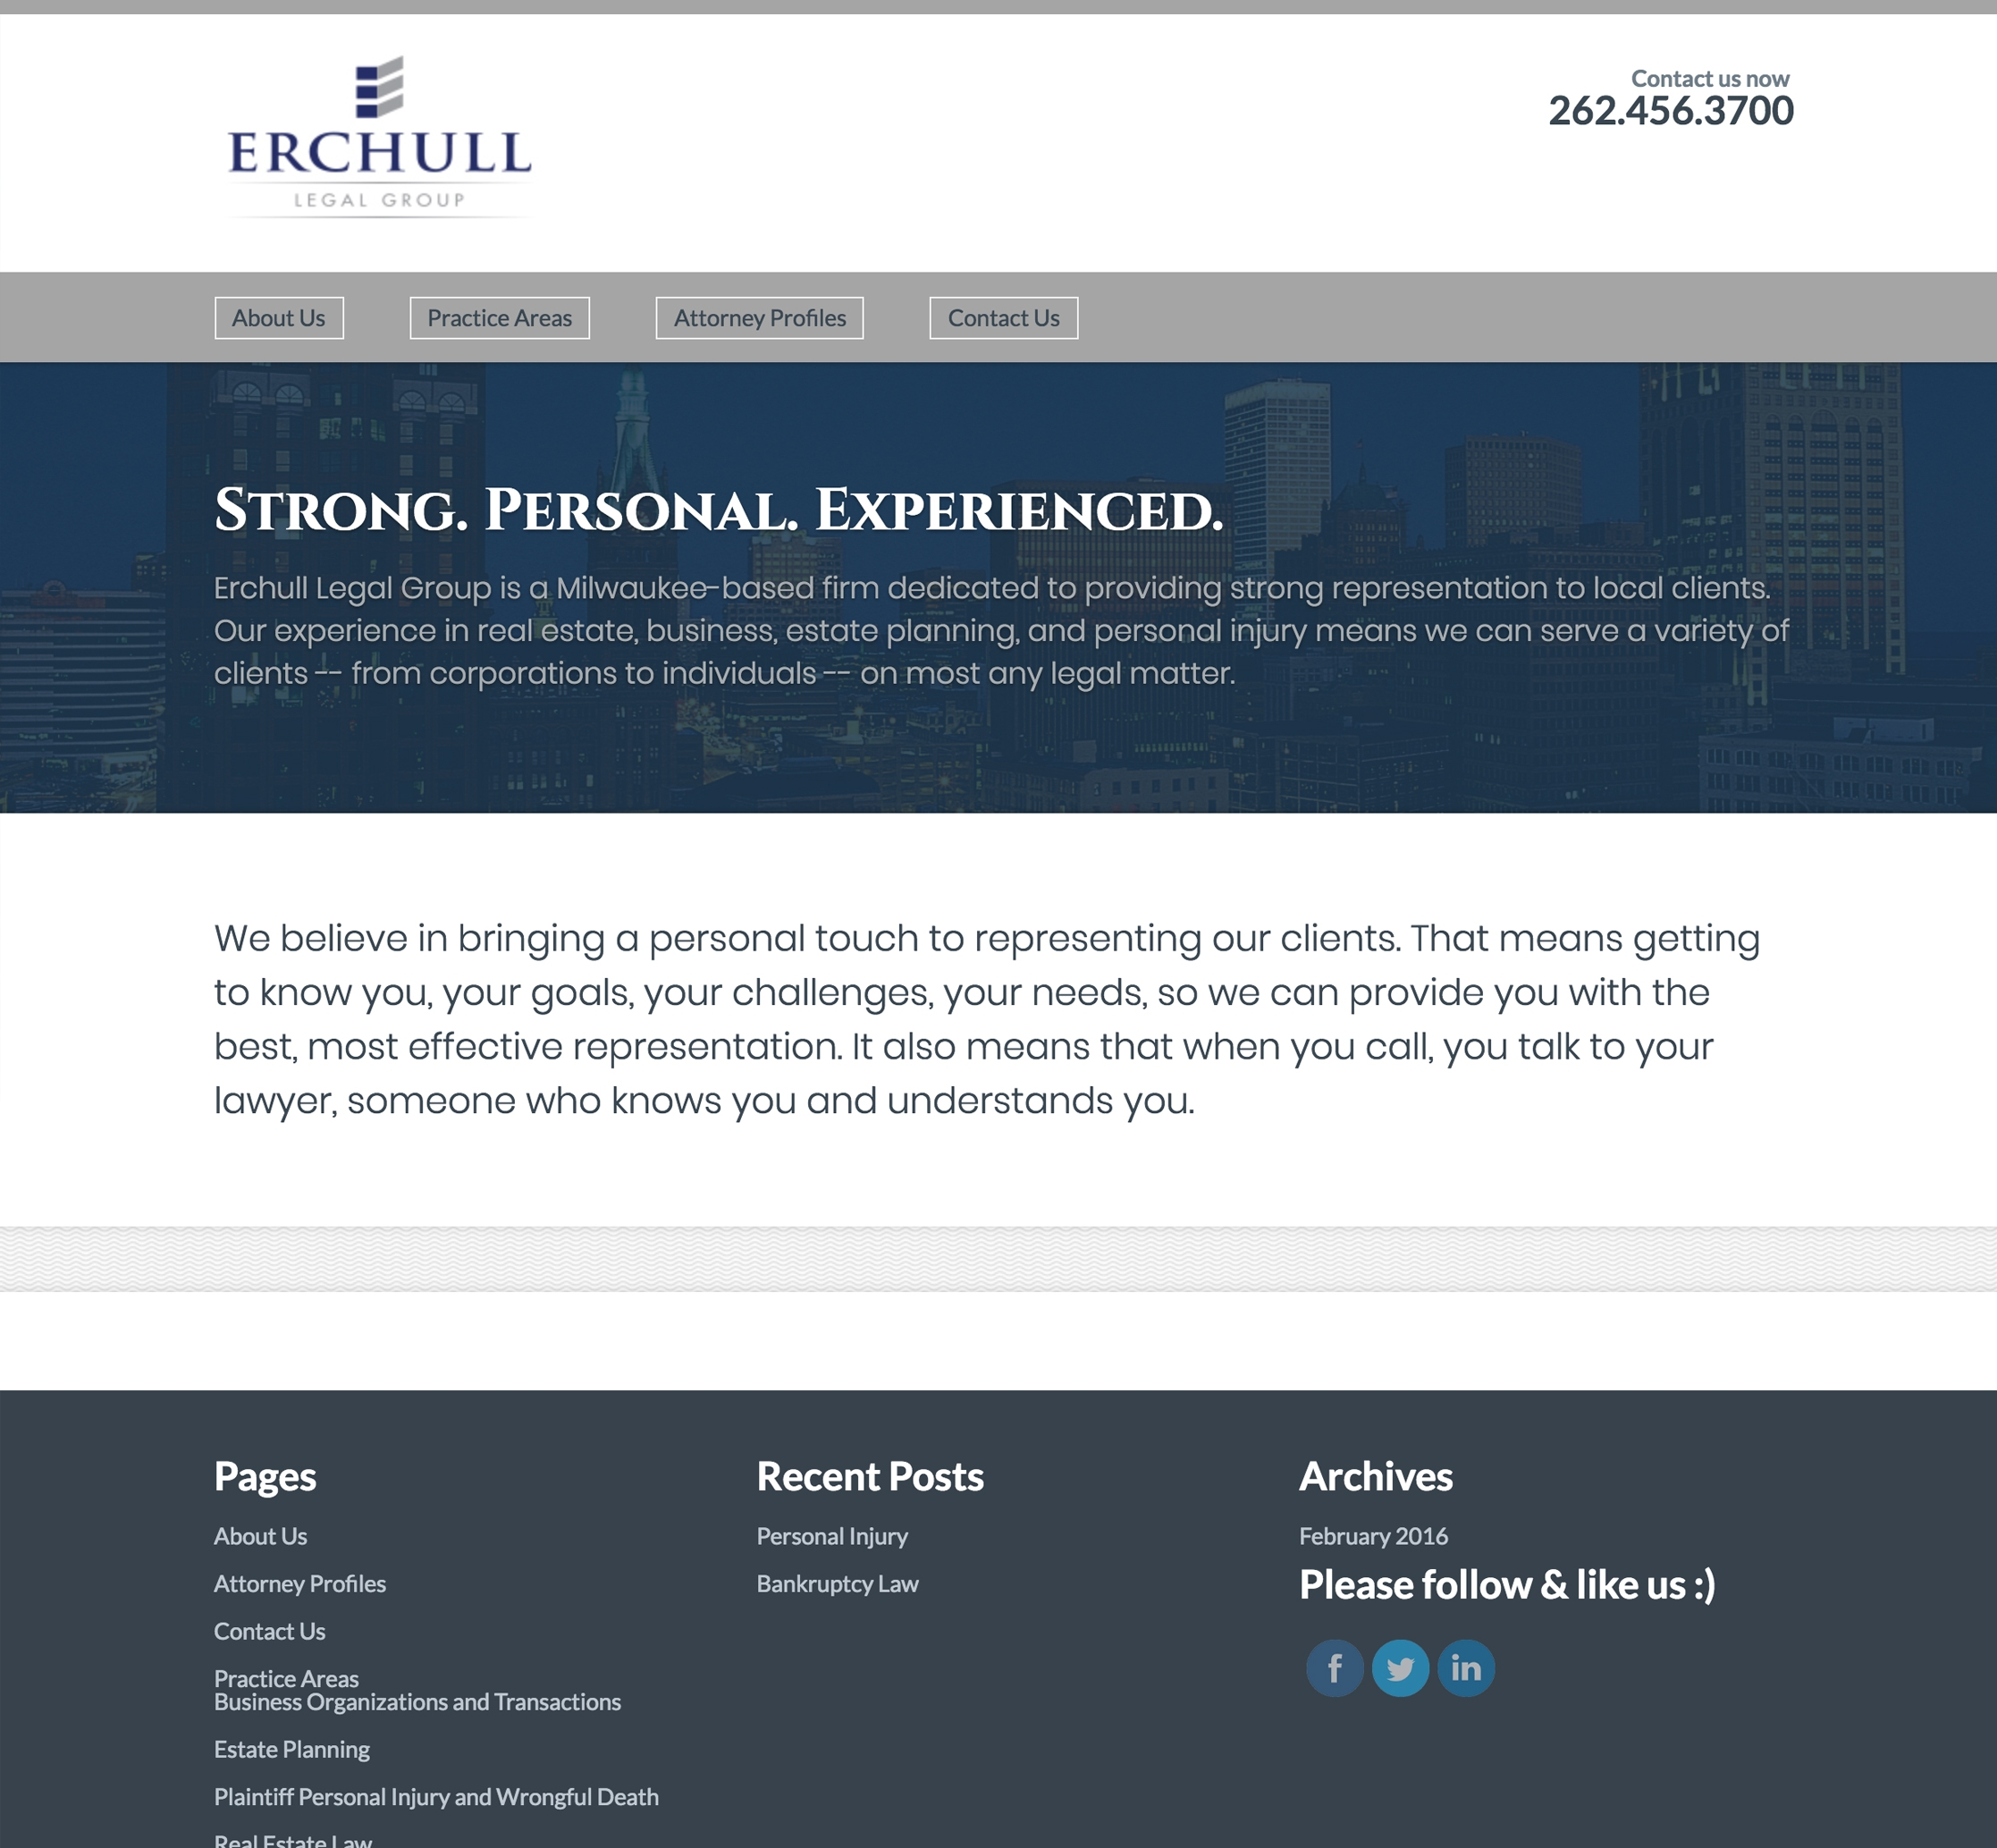 Erchull Legal Group